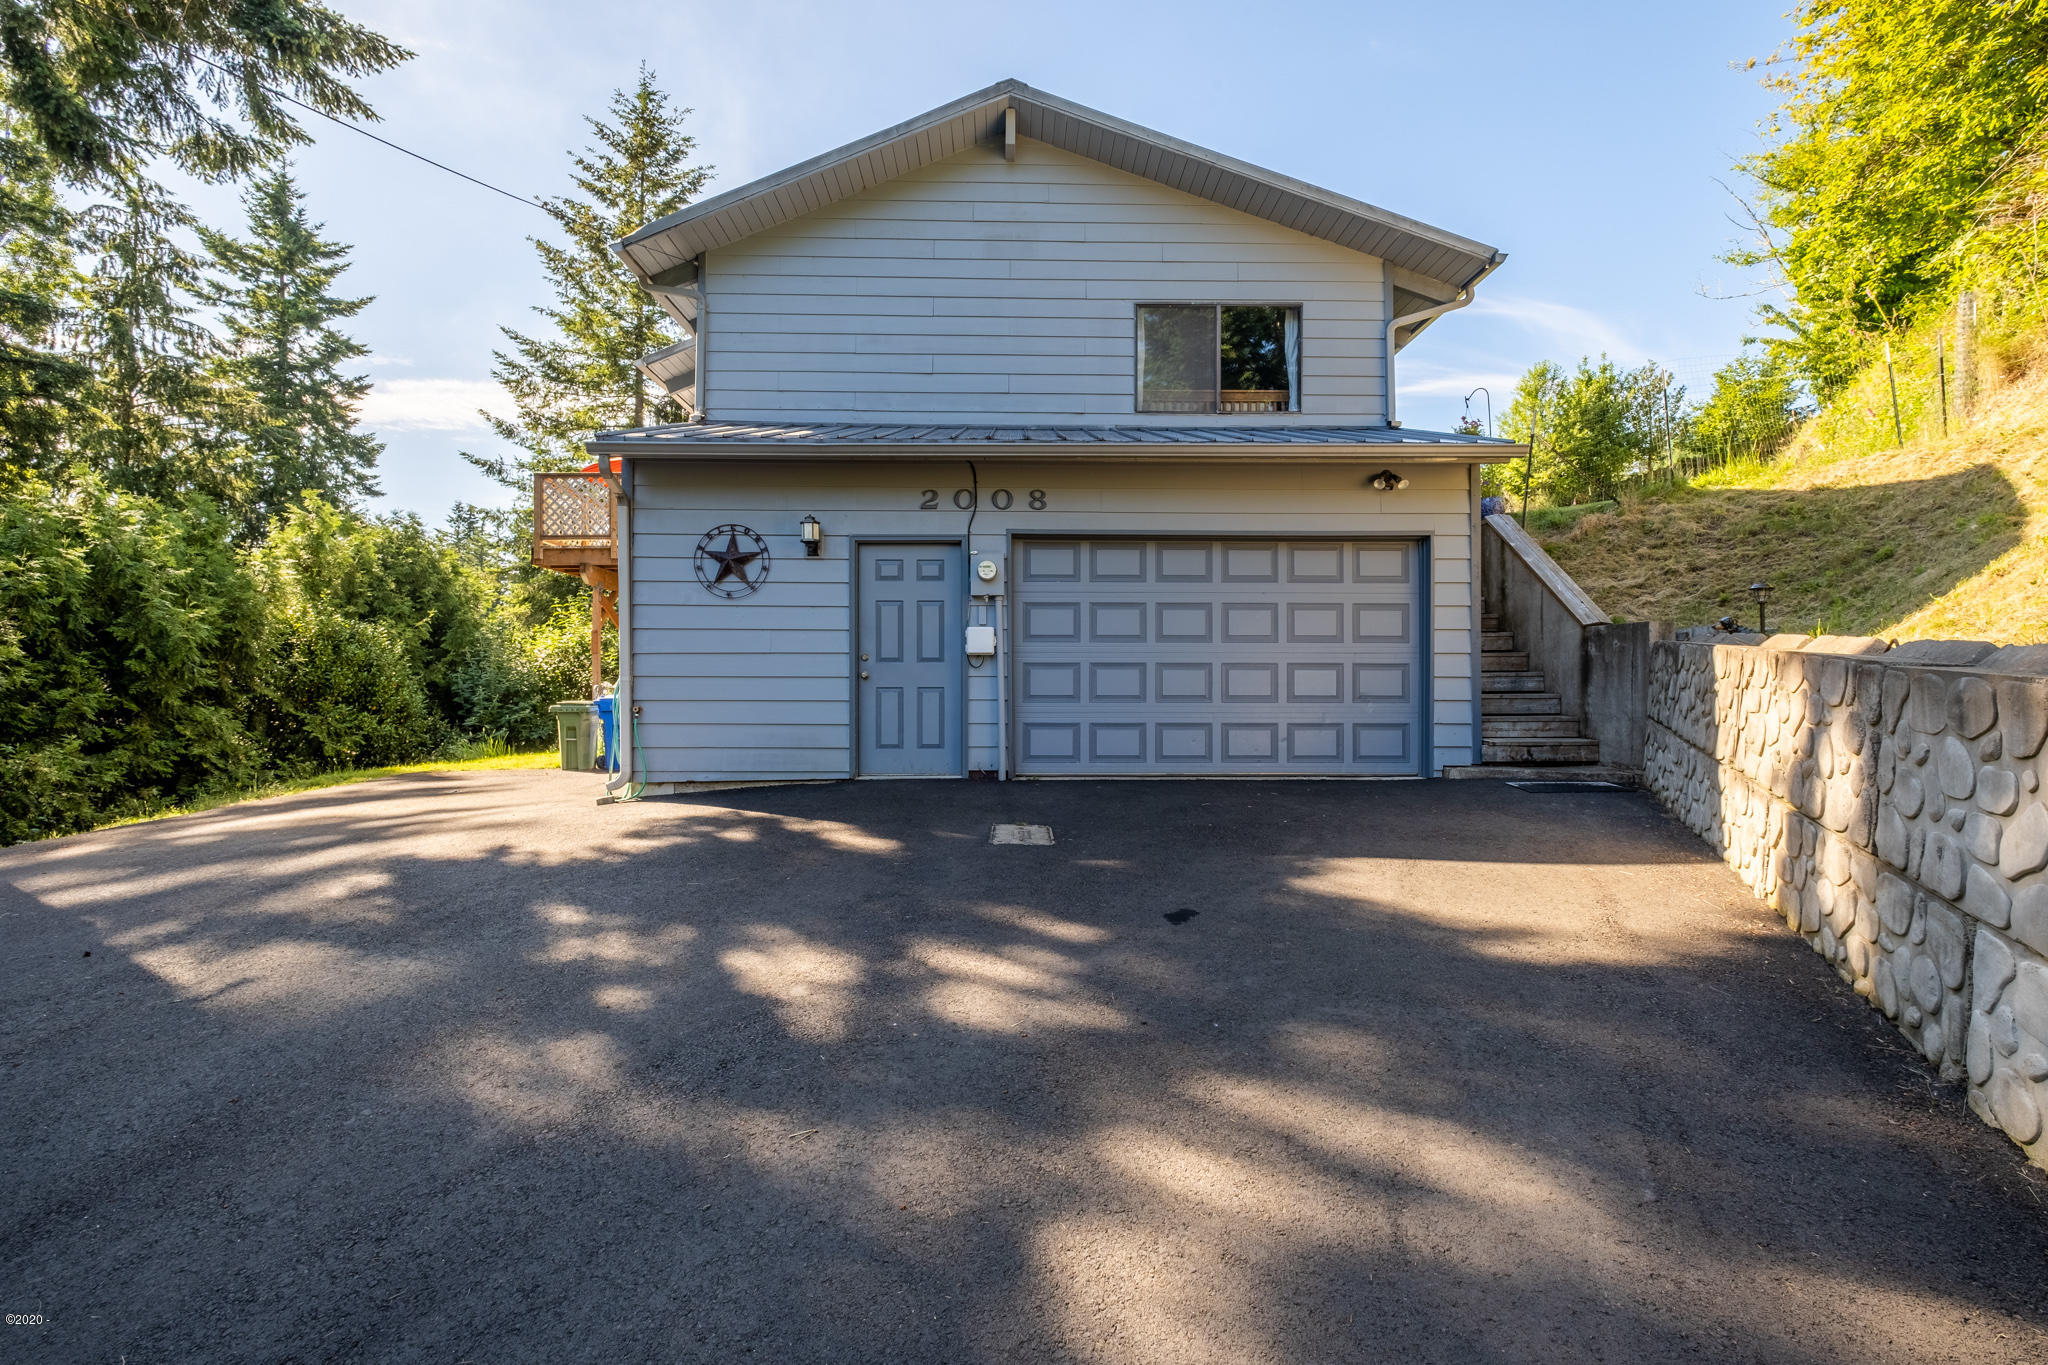 2008 SE Sturdevant Rd, Toledo, OR 97391 - Front view from driveway